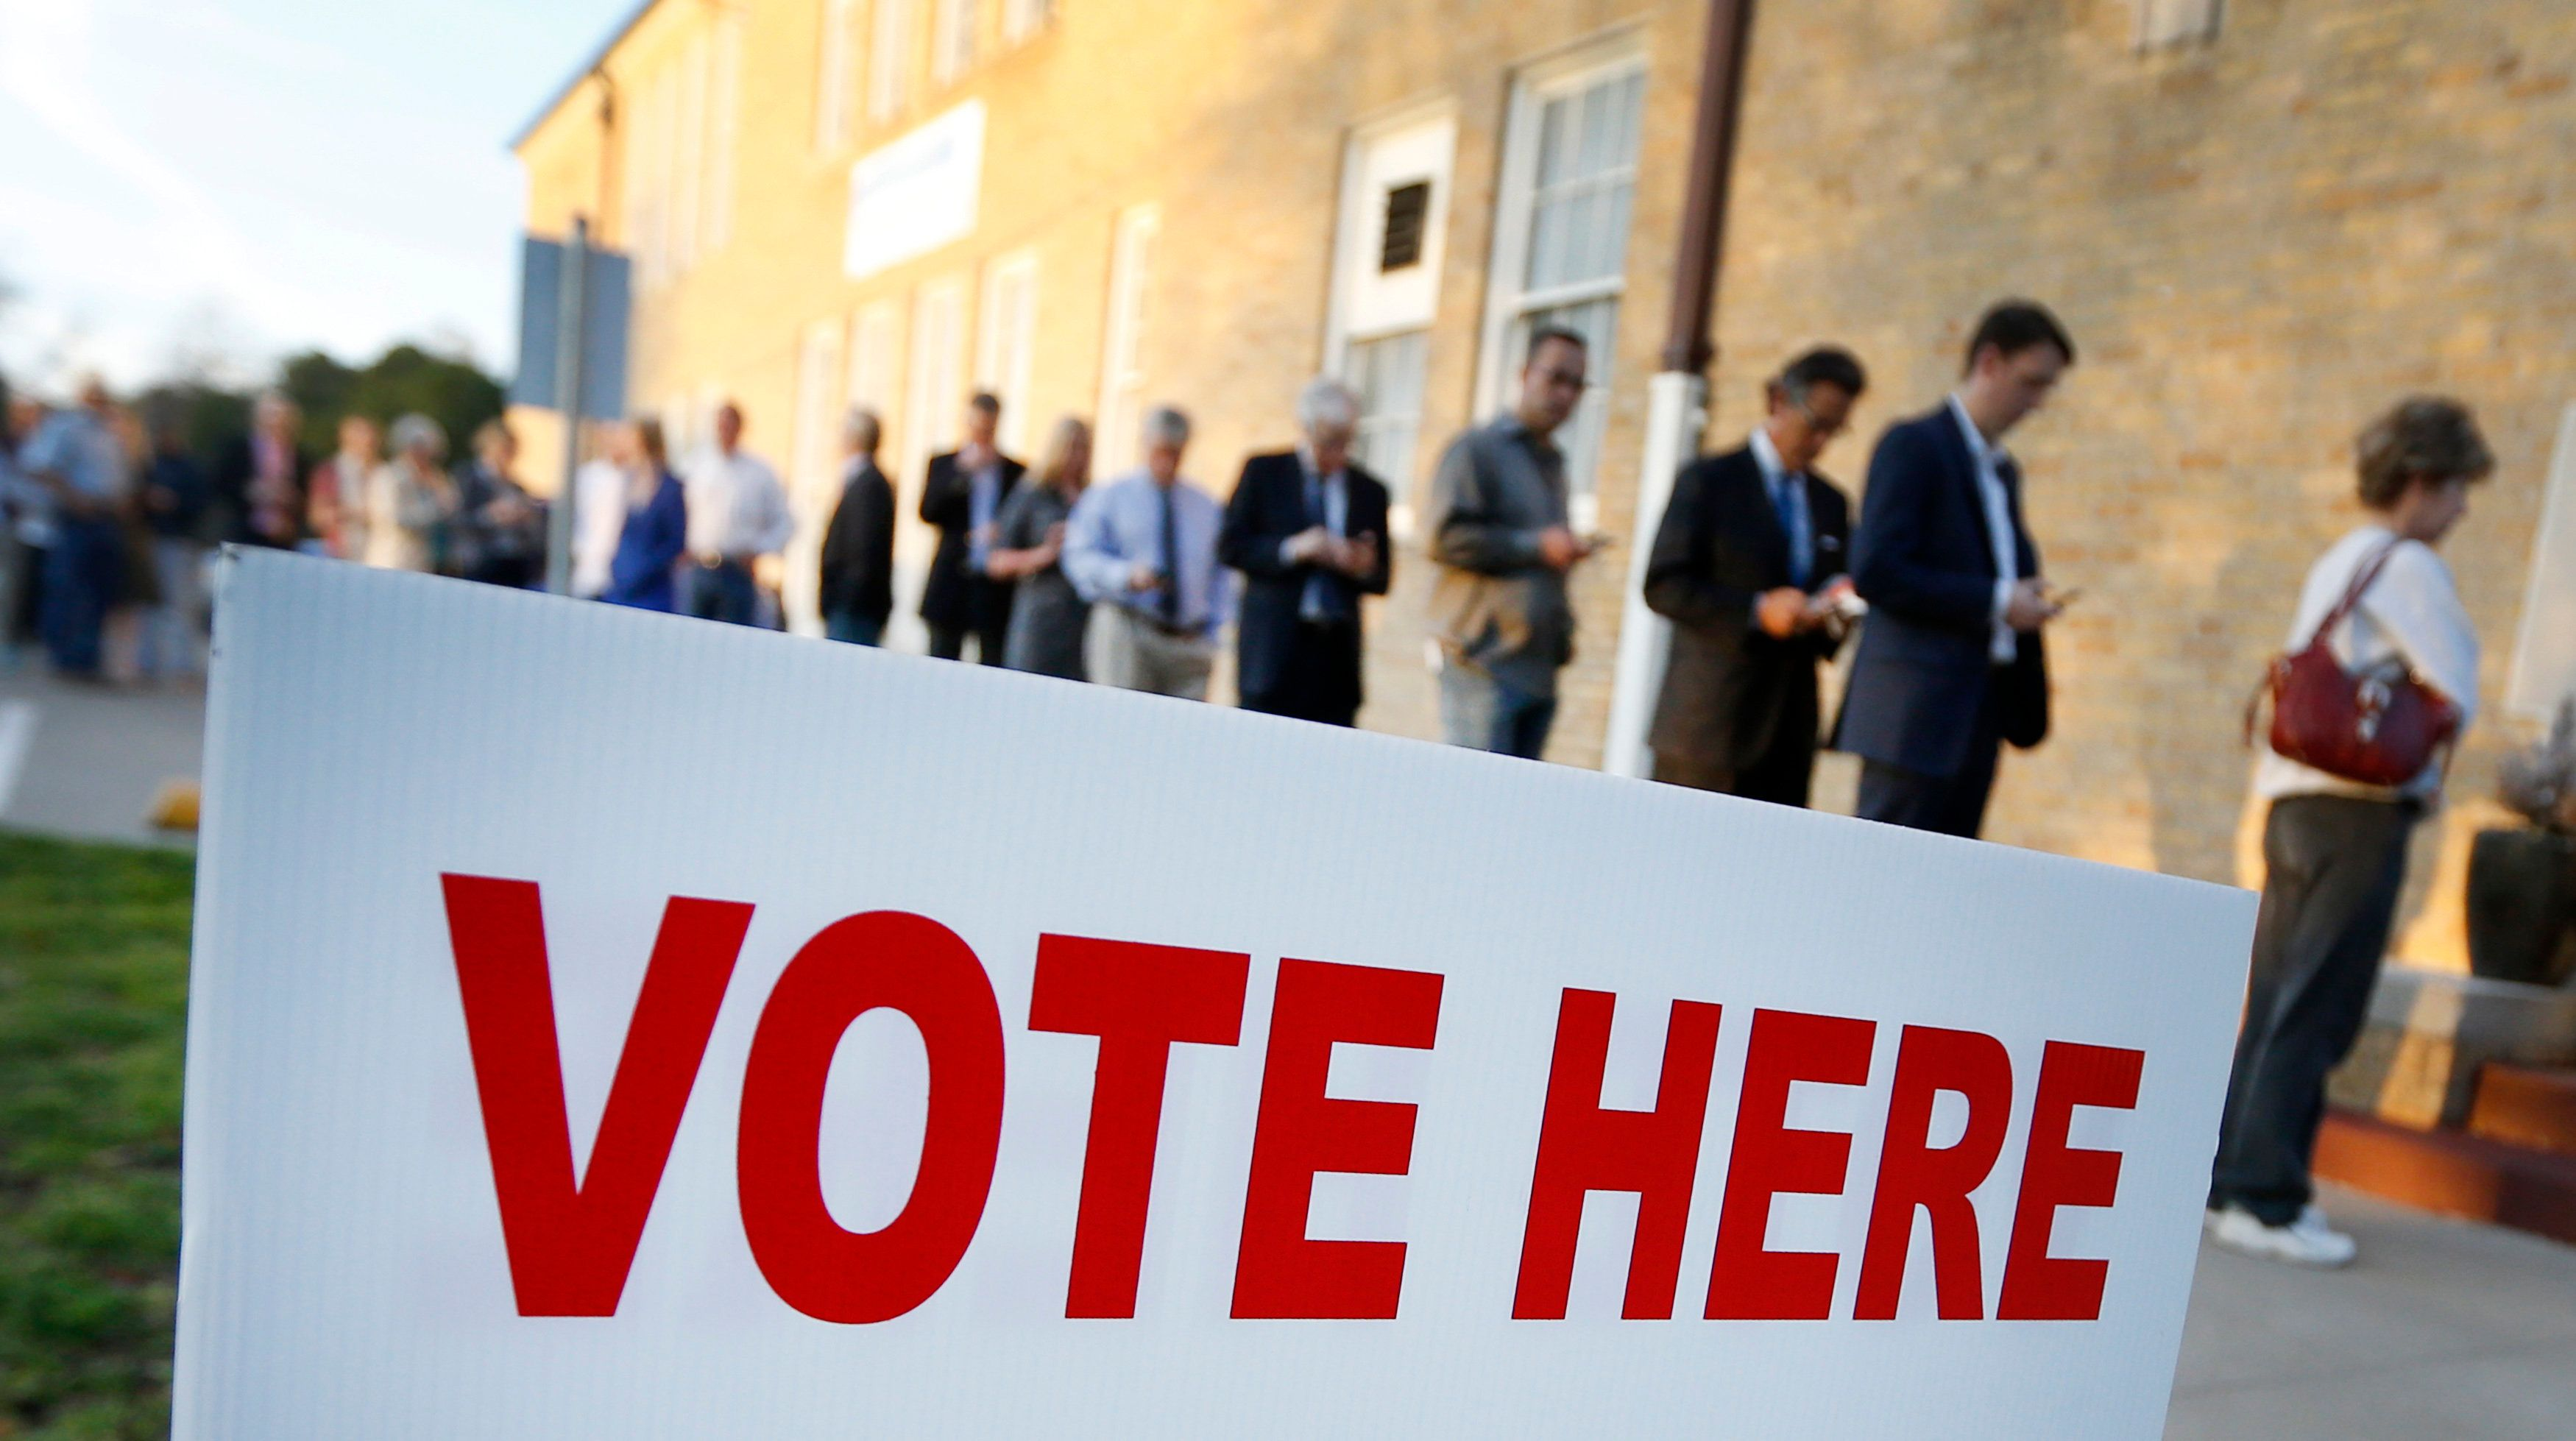 FORT WORTH, TX - MARCH 1: Voters line up to cast their ballots on Super Tuesday March 1, 2016 in Fort Worth, Texas. 13 states and American Samoa are holding presidential primary elections, with over 1400 delegates at stake. (Photo by Ron Jenkins/Getty Images)